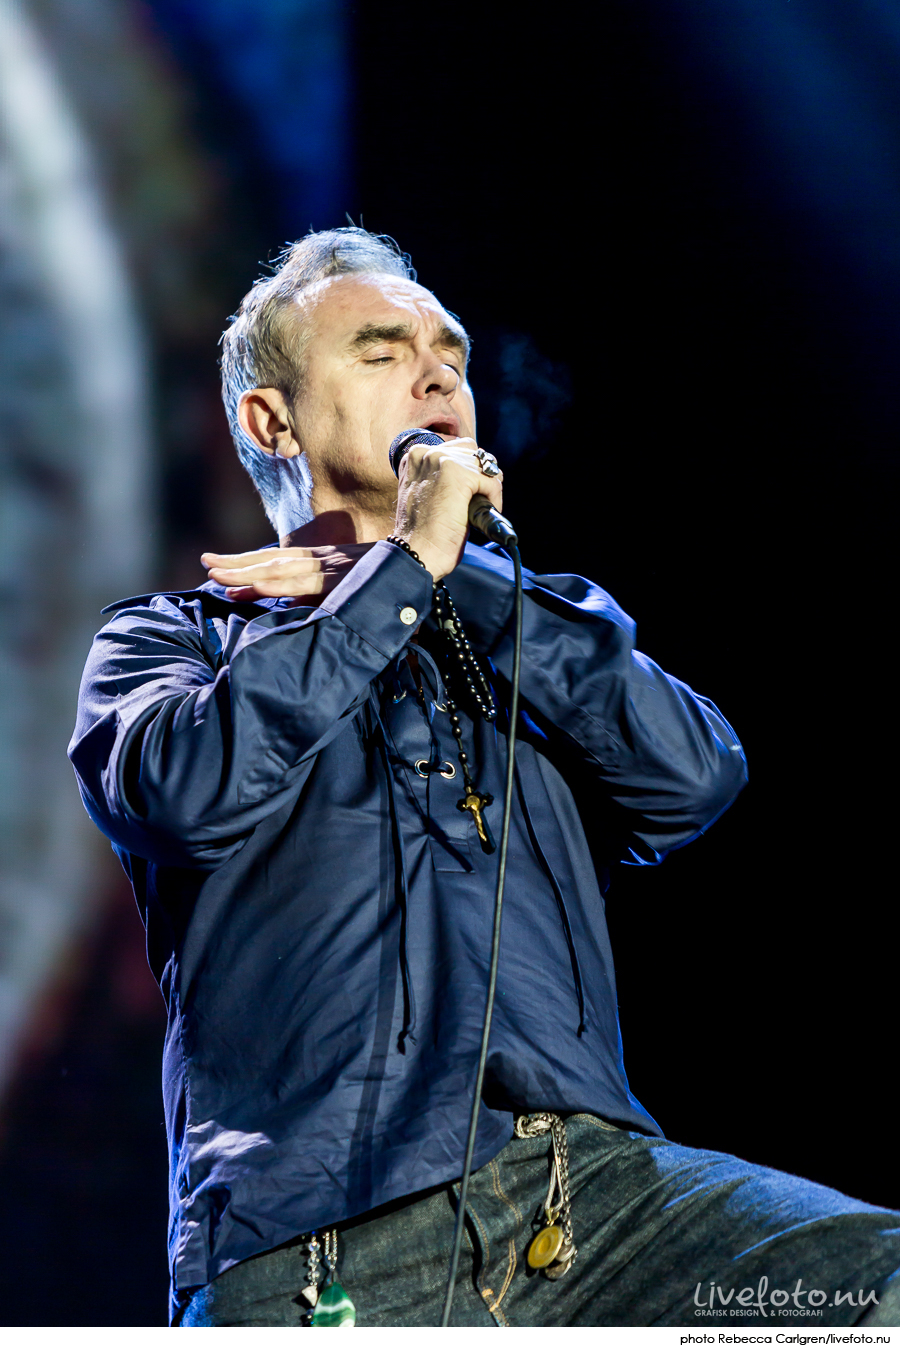 160811_morrissey-wow_Photo_Rebecca-Carlgren_livefoto.nu_-4